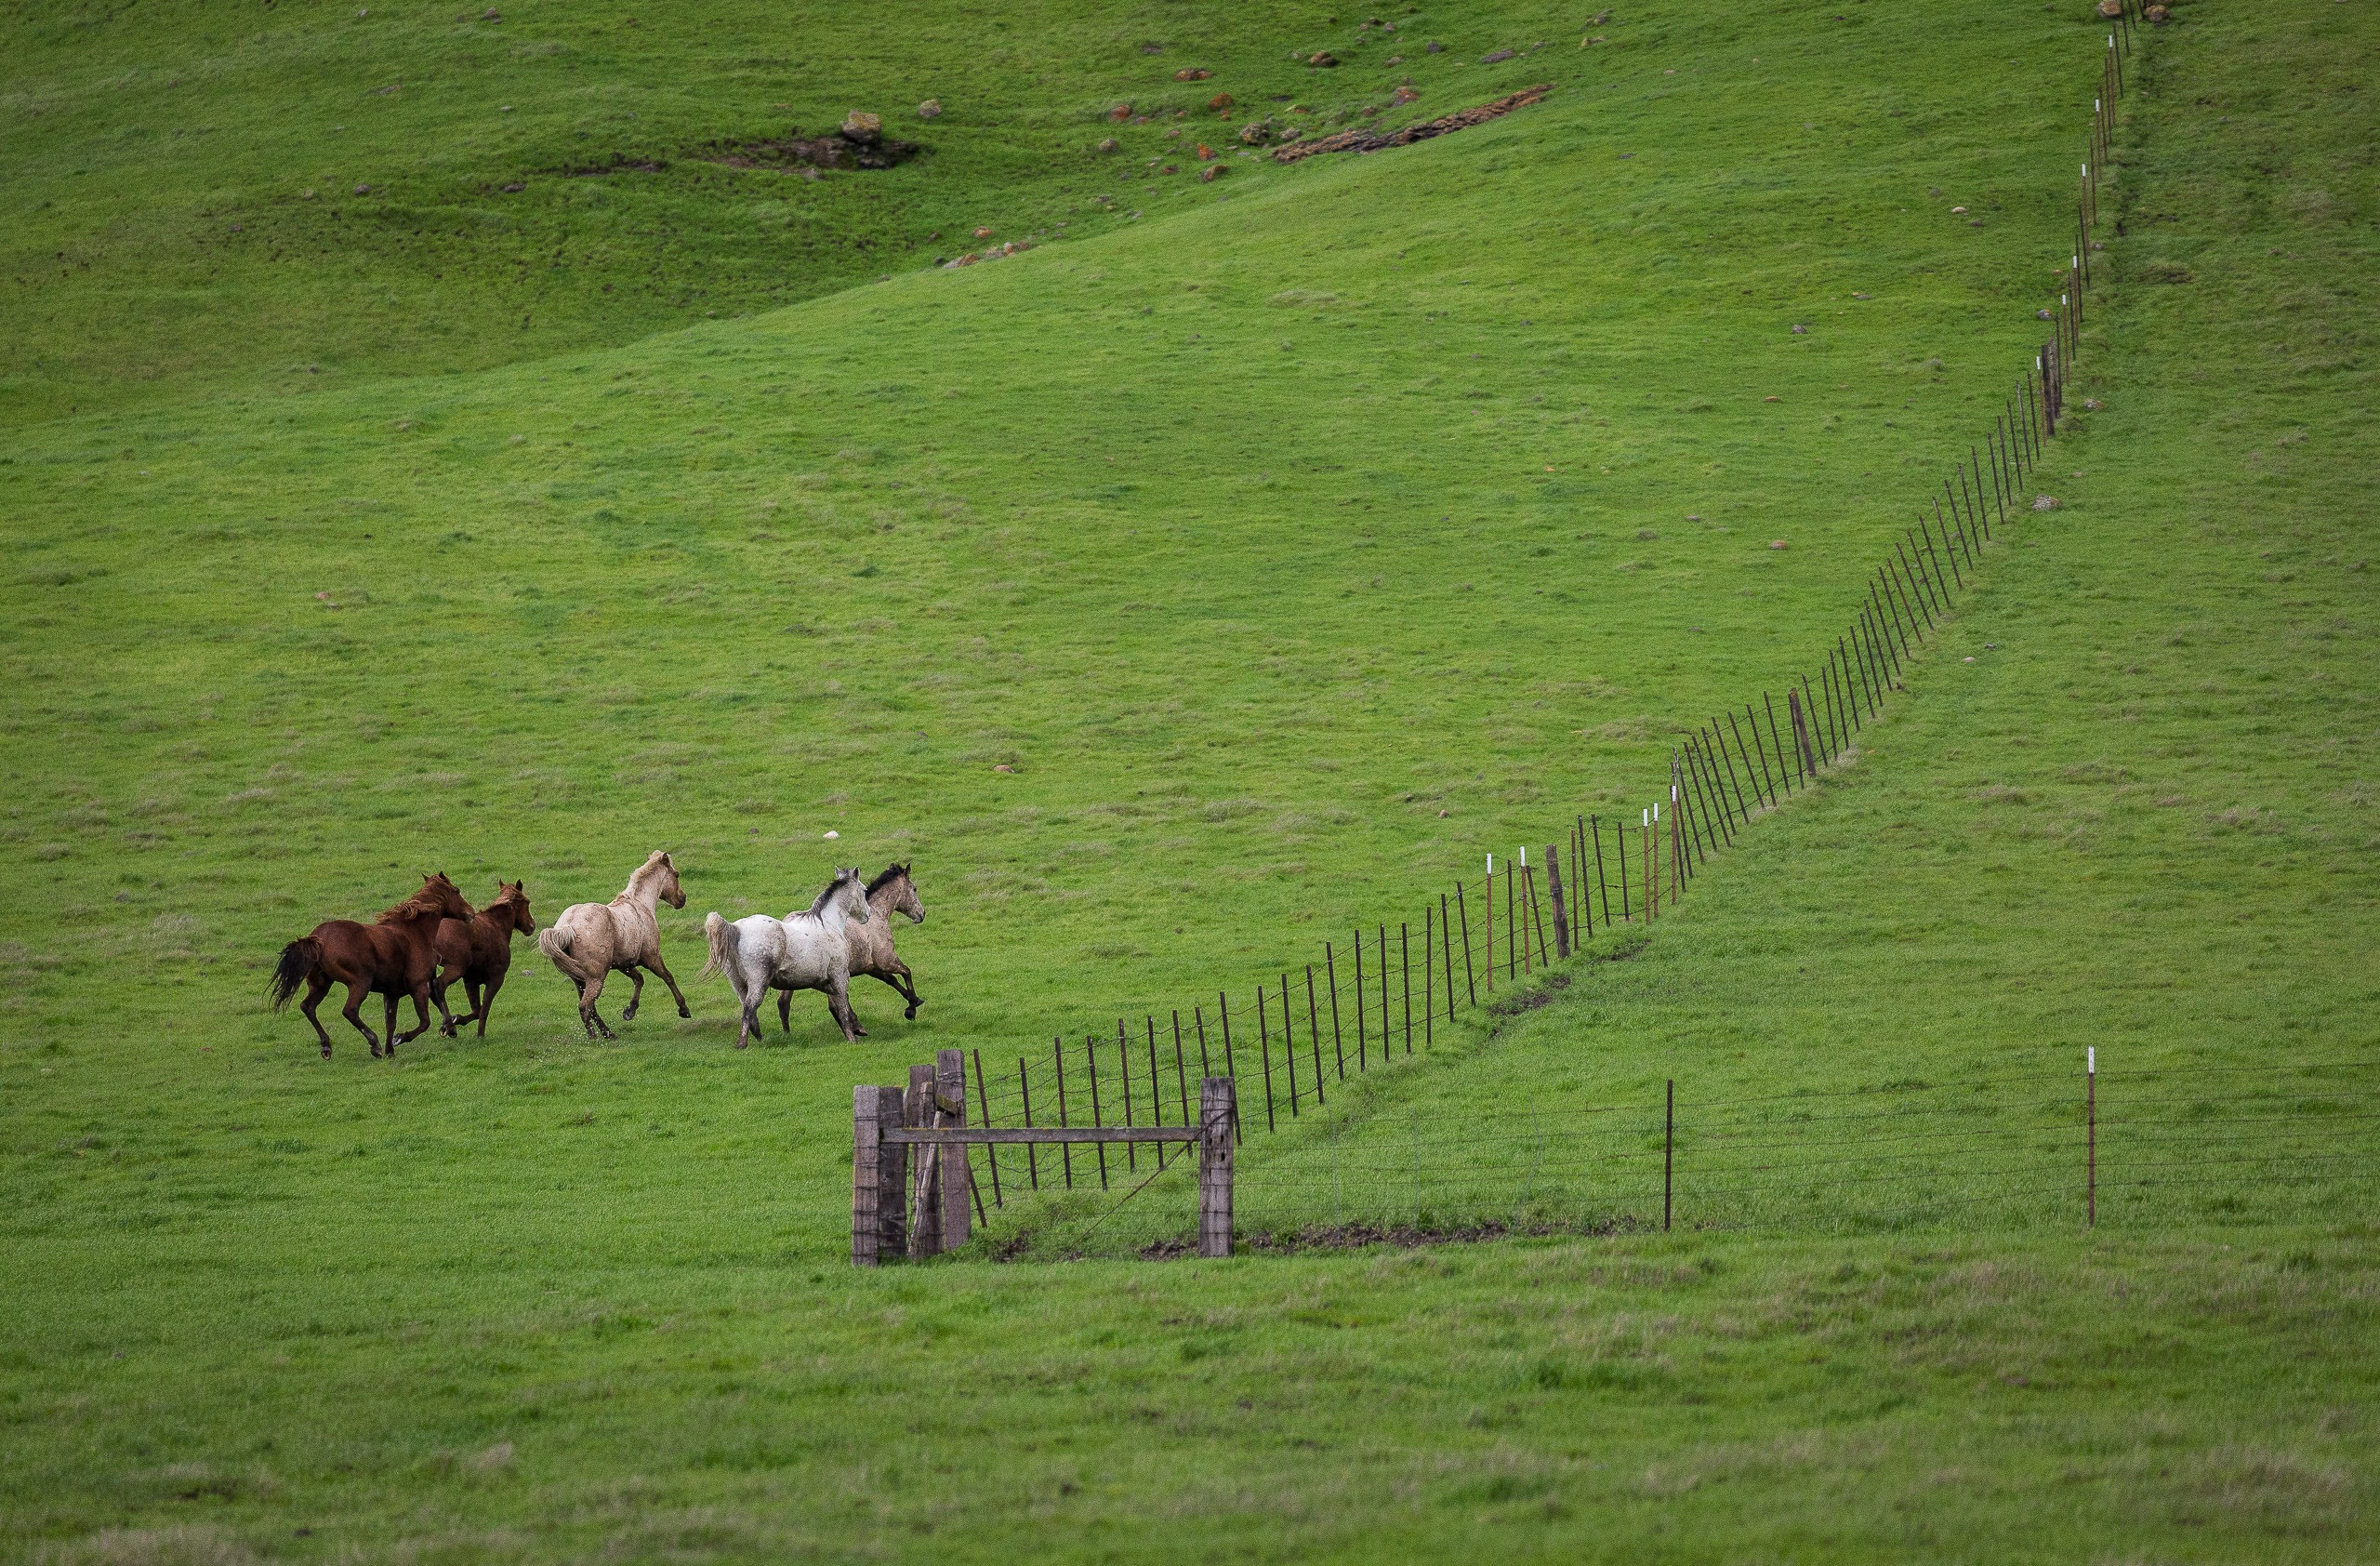 Galloping The Fence Line